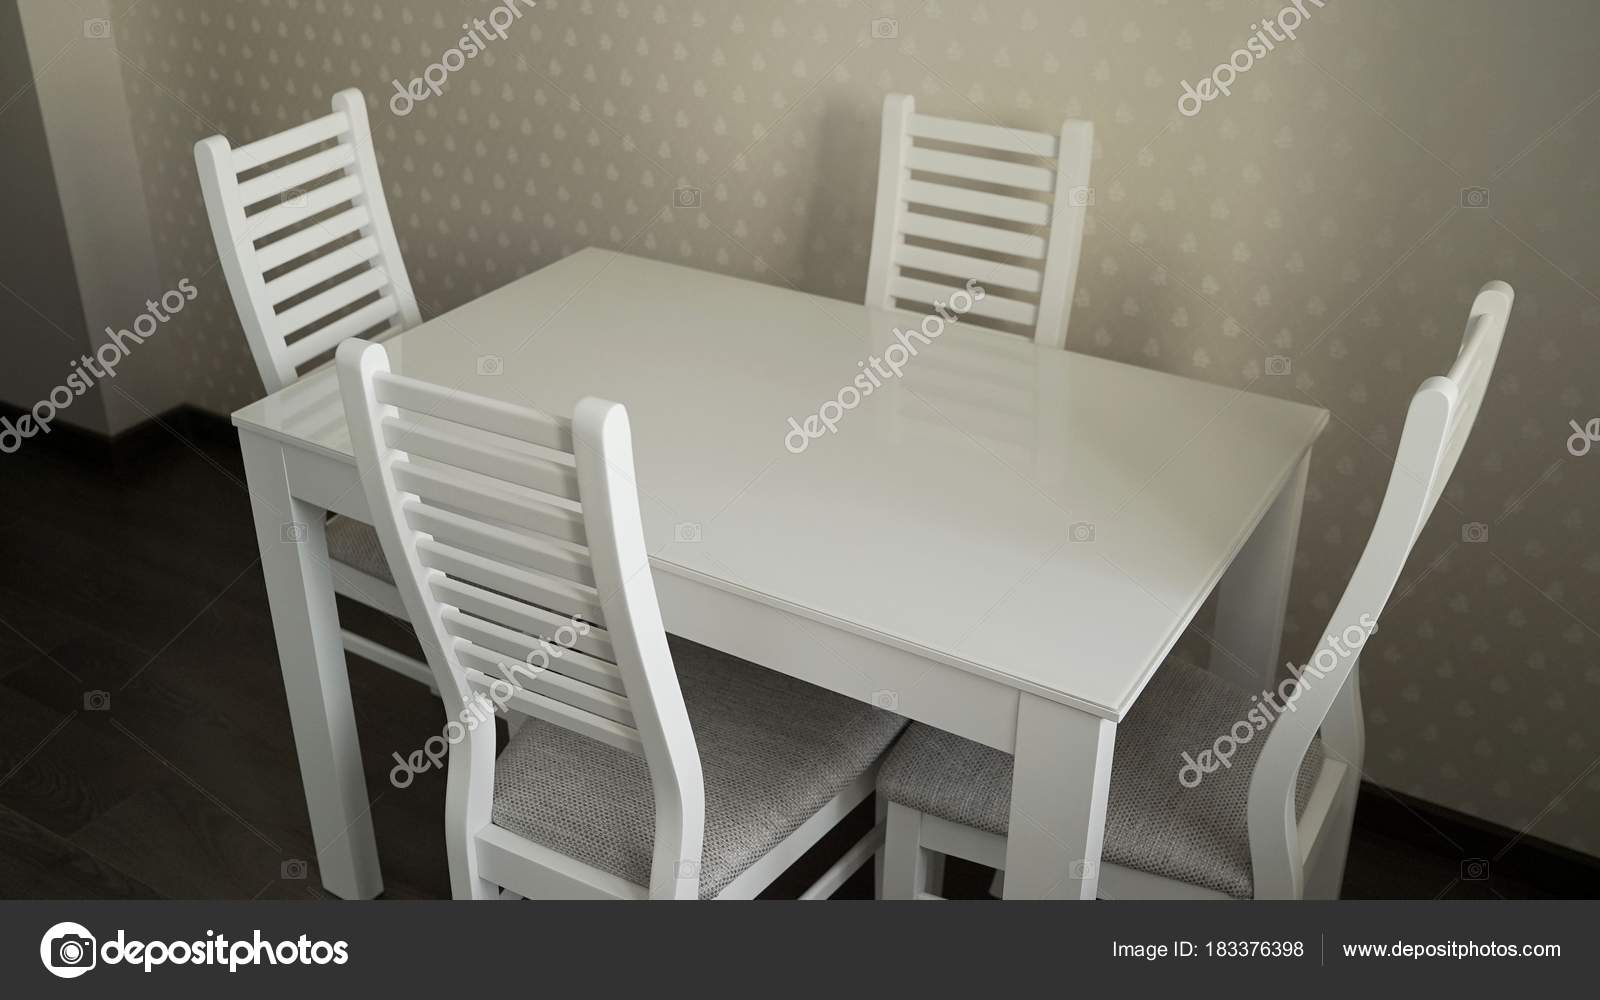 chairs for kitchen table aid classic 带椅子的厨房桌子厨房餐桌和椅子 图库照片 c rusrussid2 183376398